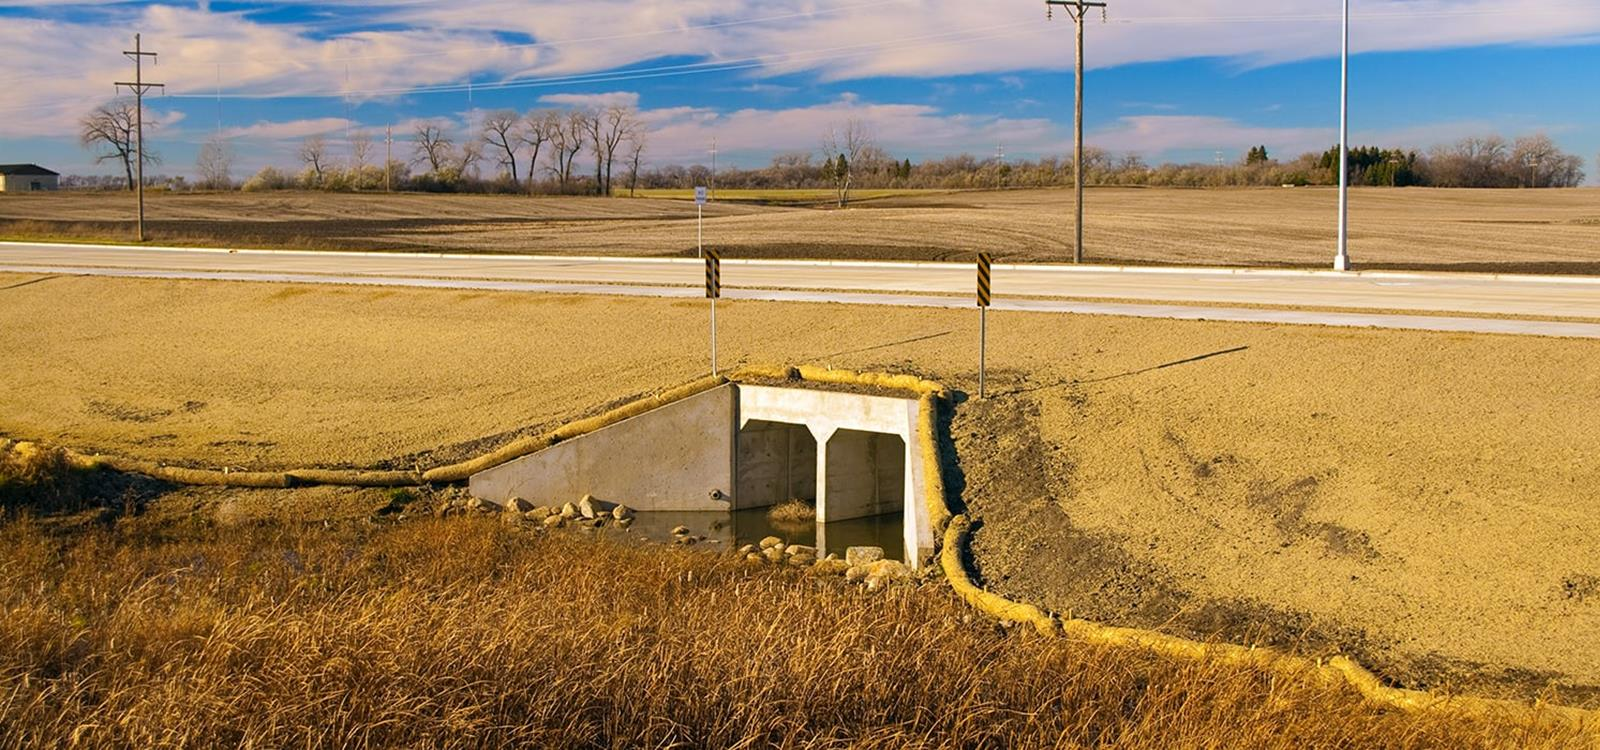 37th Ave. Box Culvert